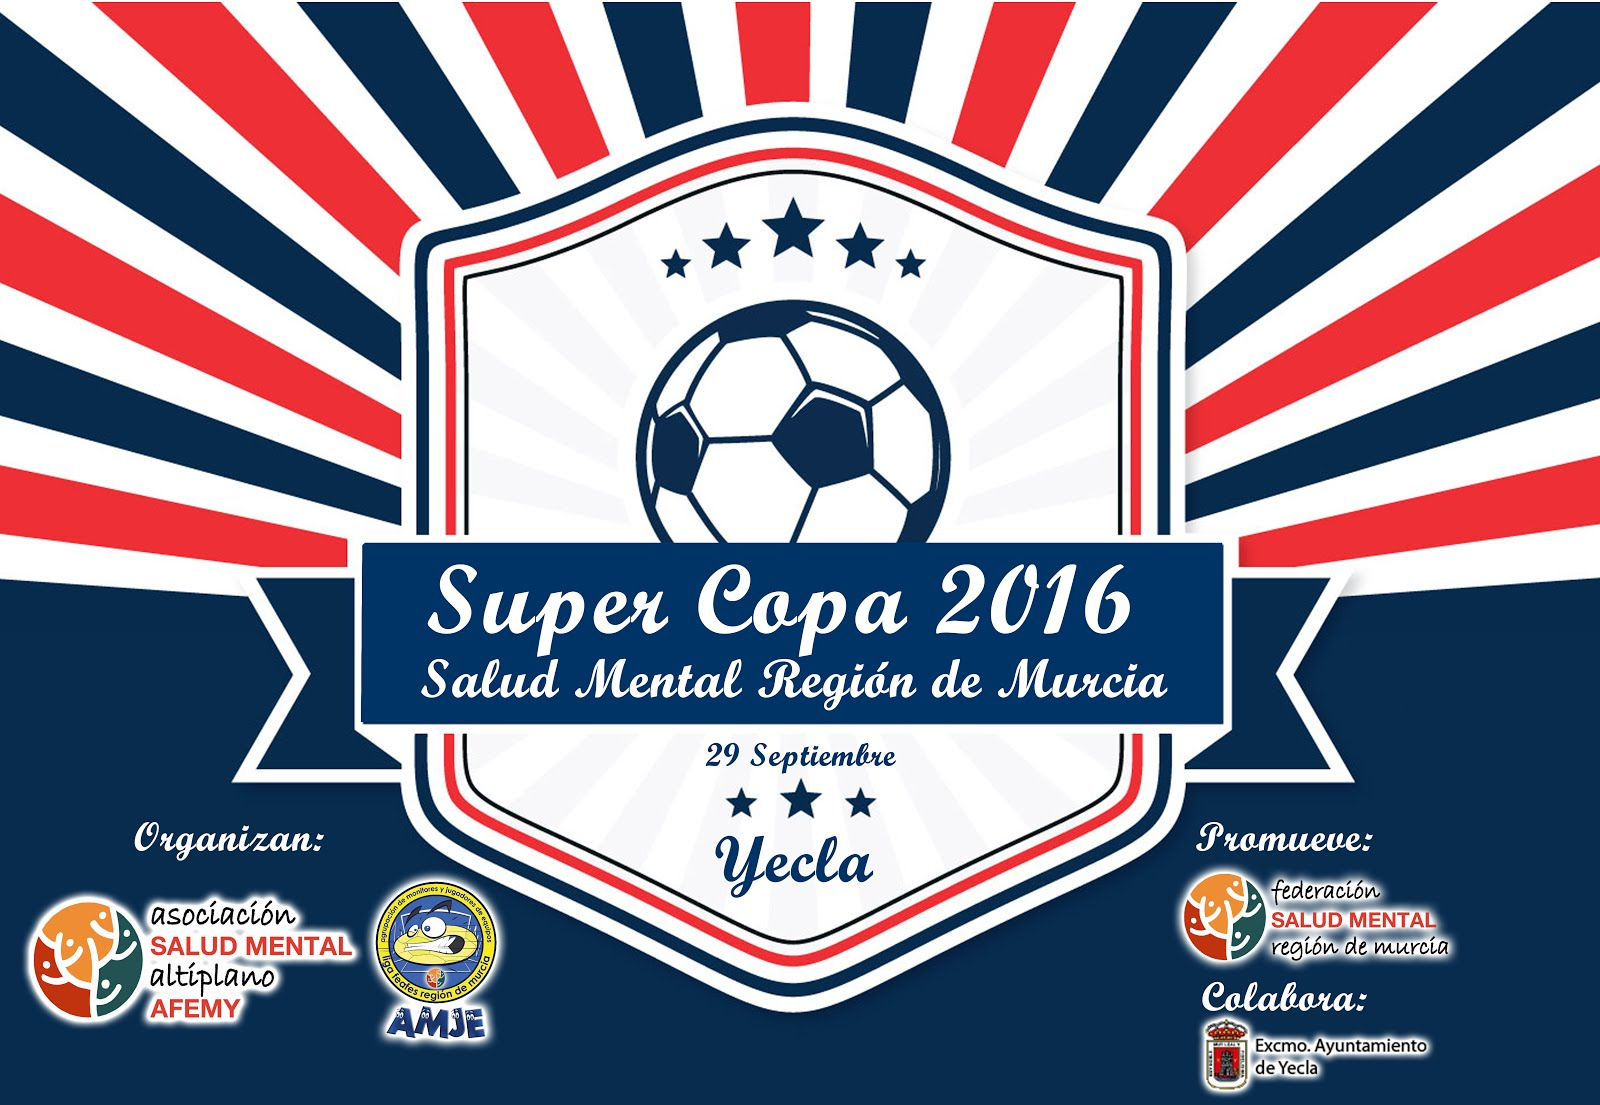 CARTEL DE LA SUPERCOPA 2016